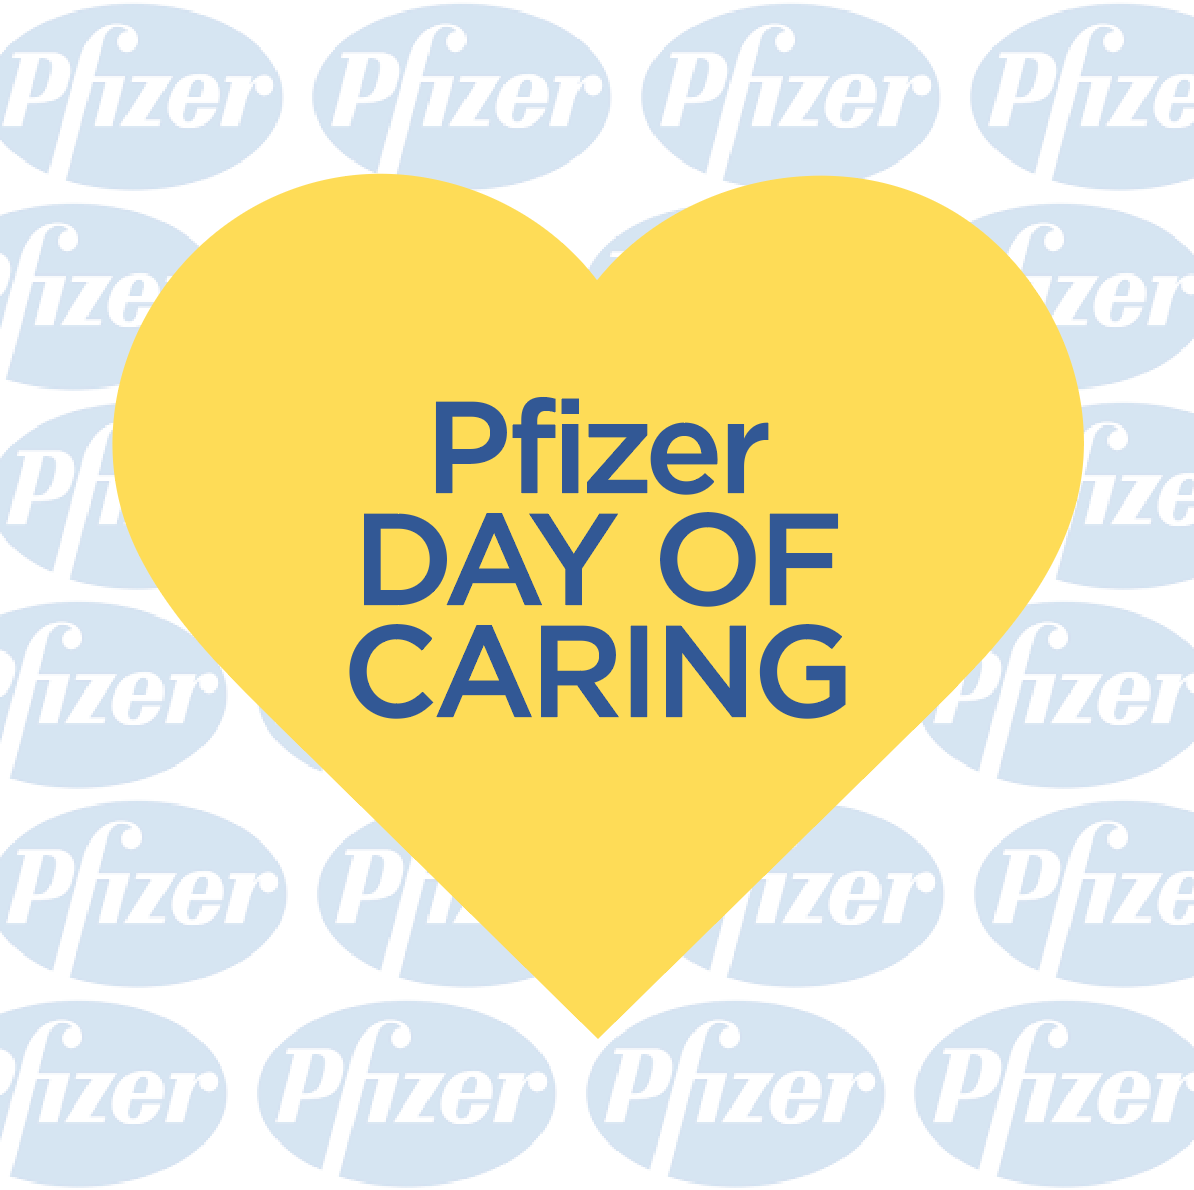 Pfizer Day of Caring